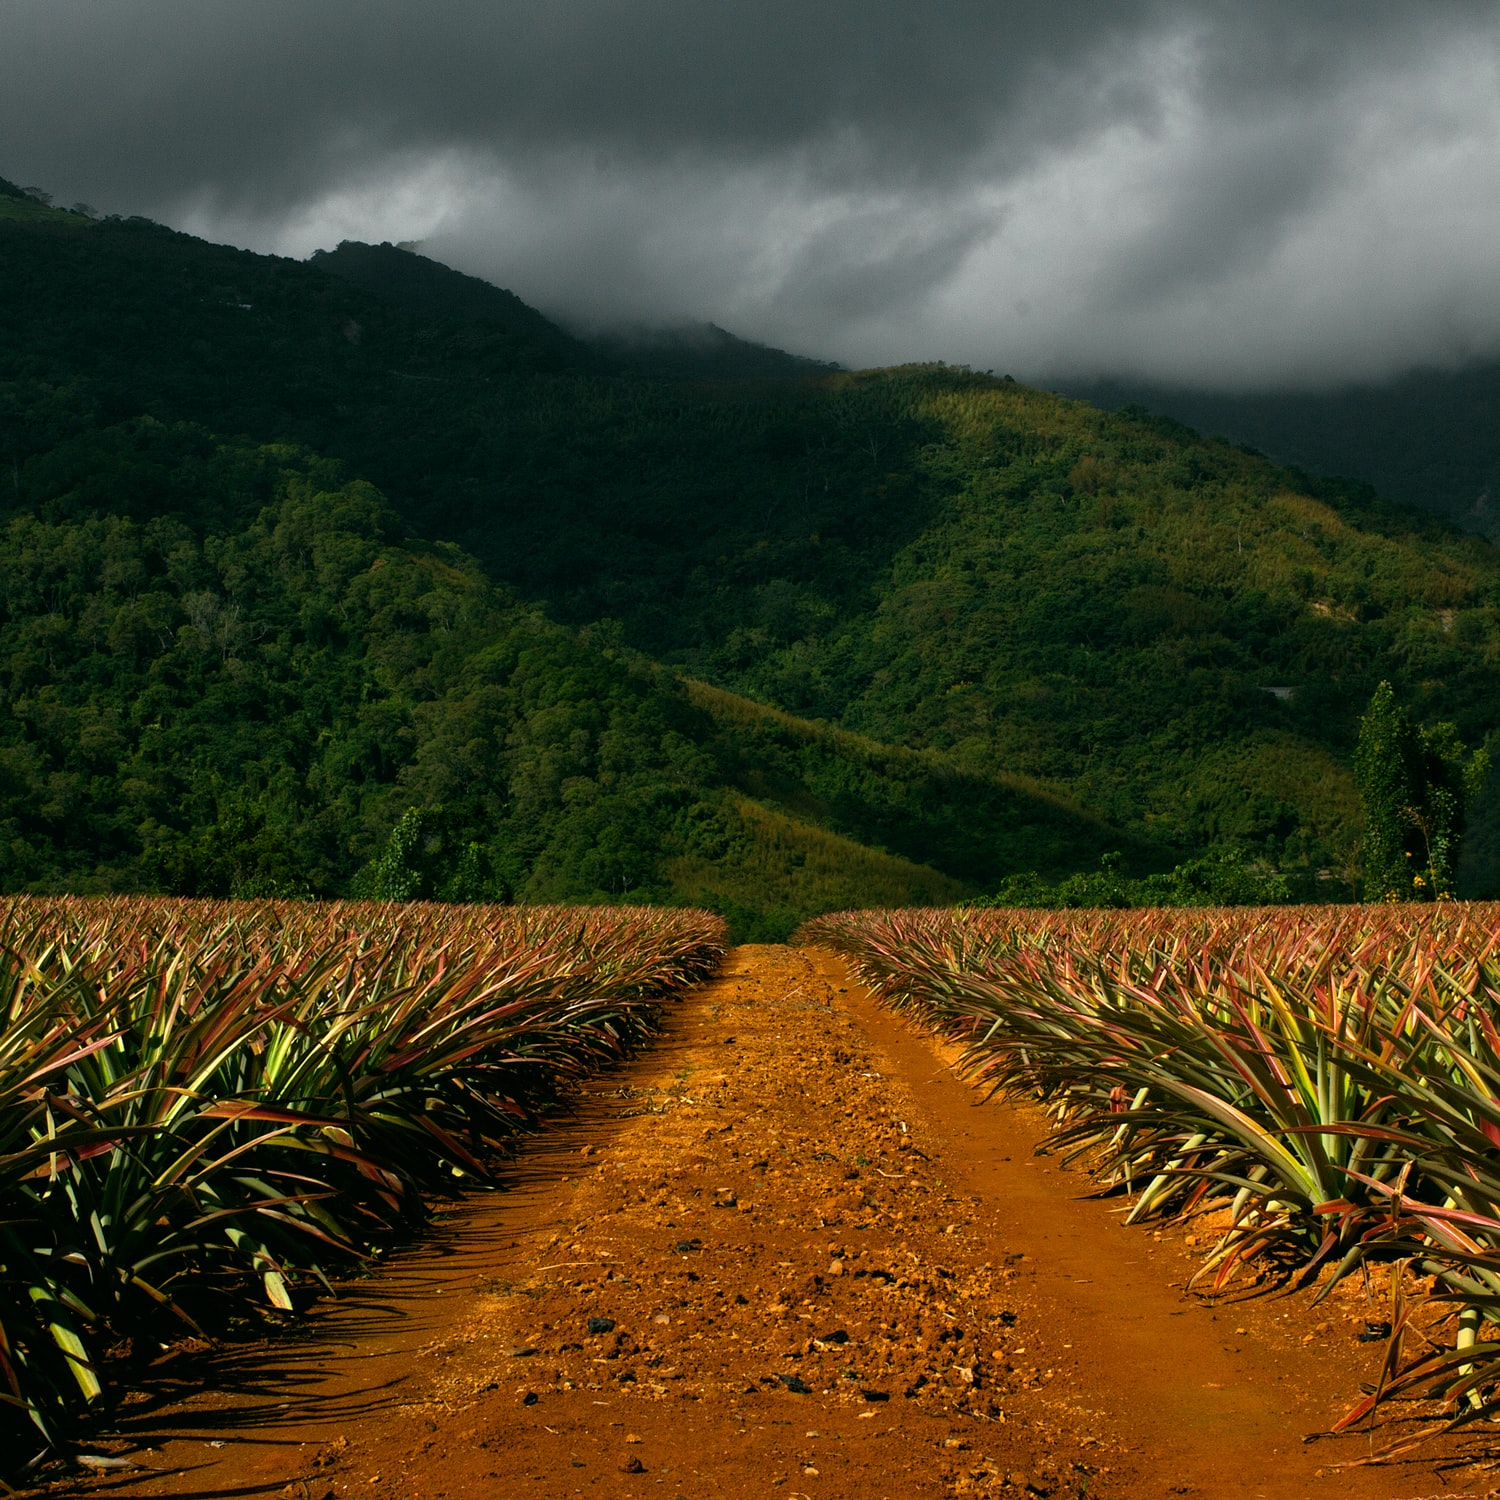 A red dirt road leading towards green hills in Taiwan